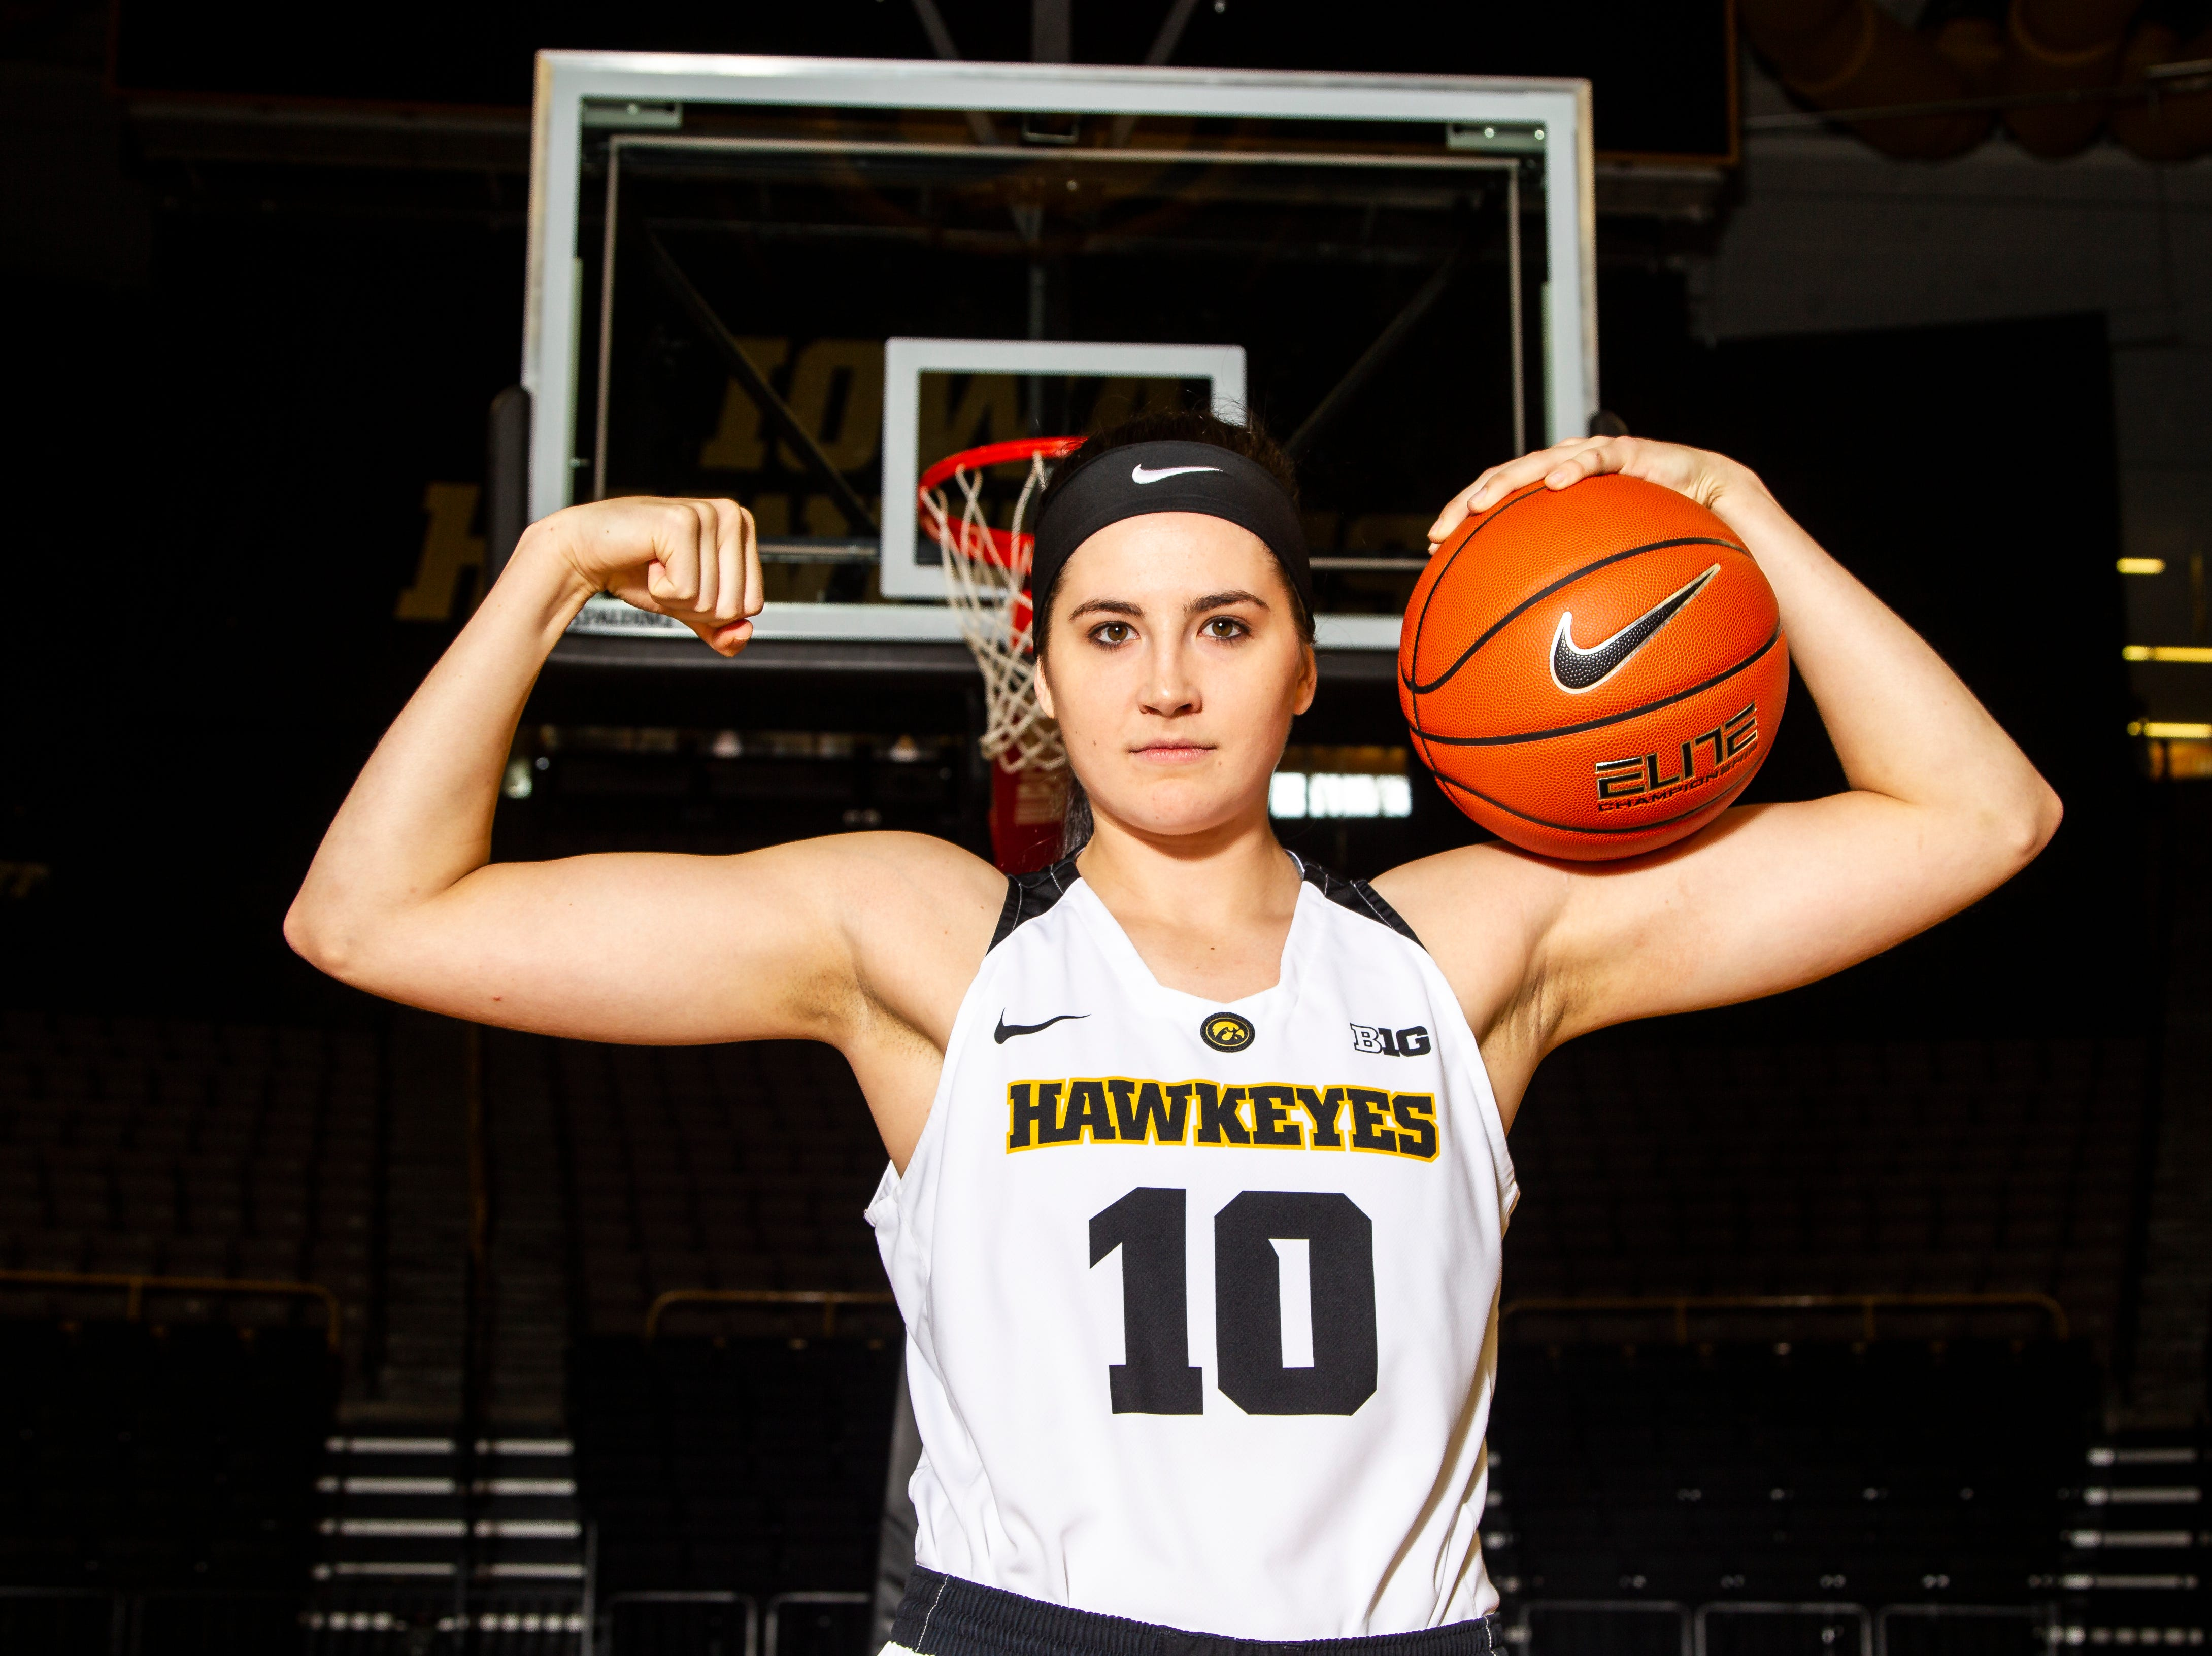 Iowa forward Megan Gustafson (10) poses for a portrait during Hawkeye women's basketball media day on Wednesday, Oct. 31, 2018, at Carver-Hawkeye Arena in Iowa City.